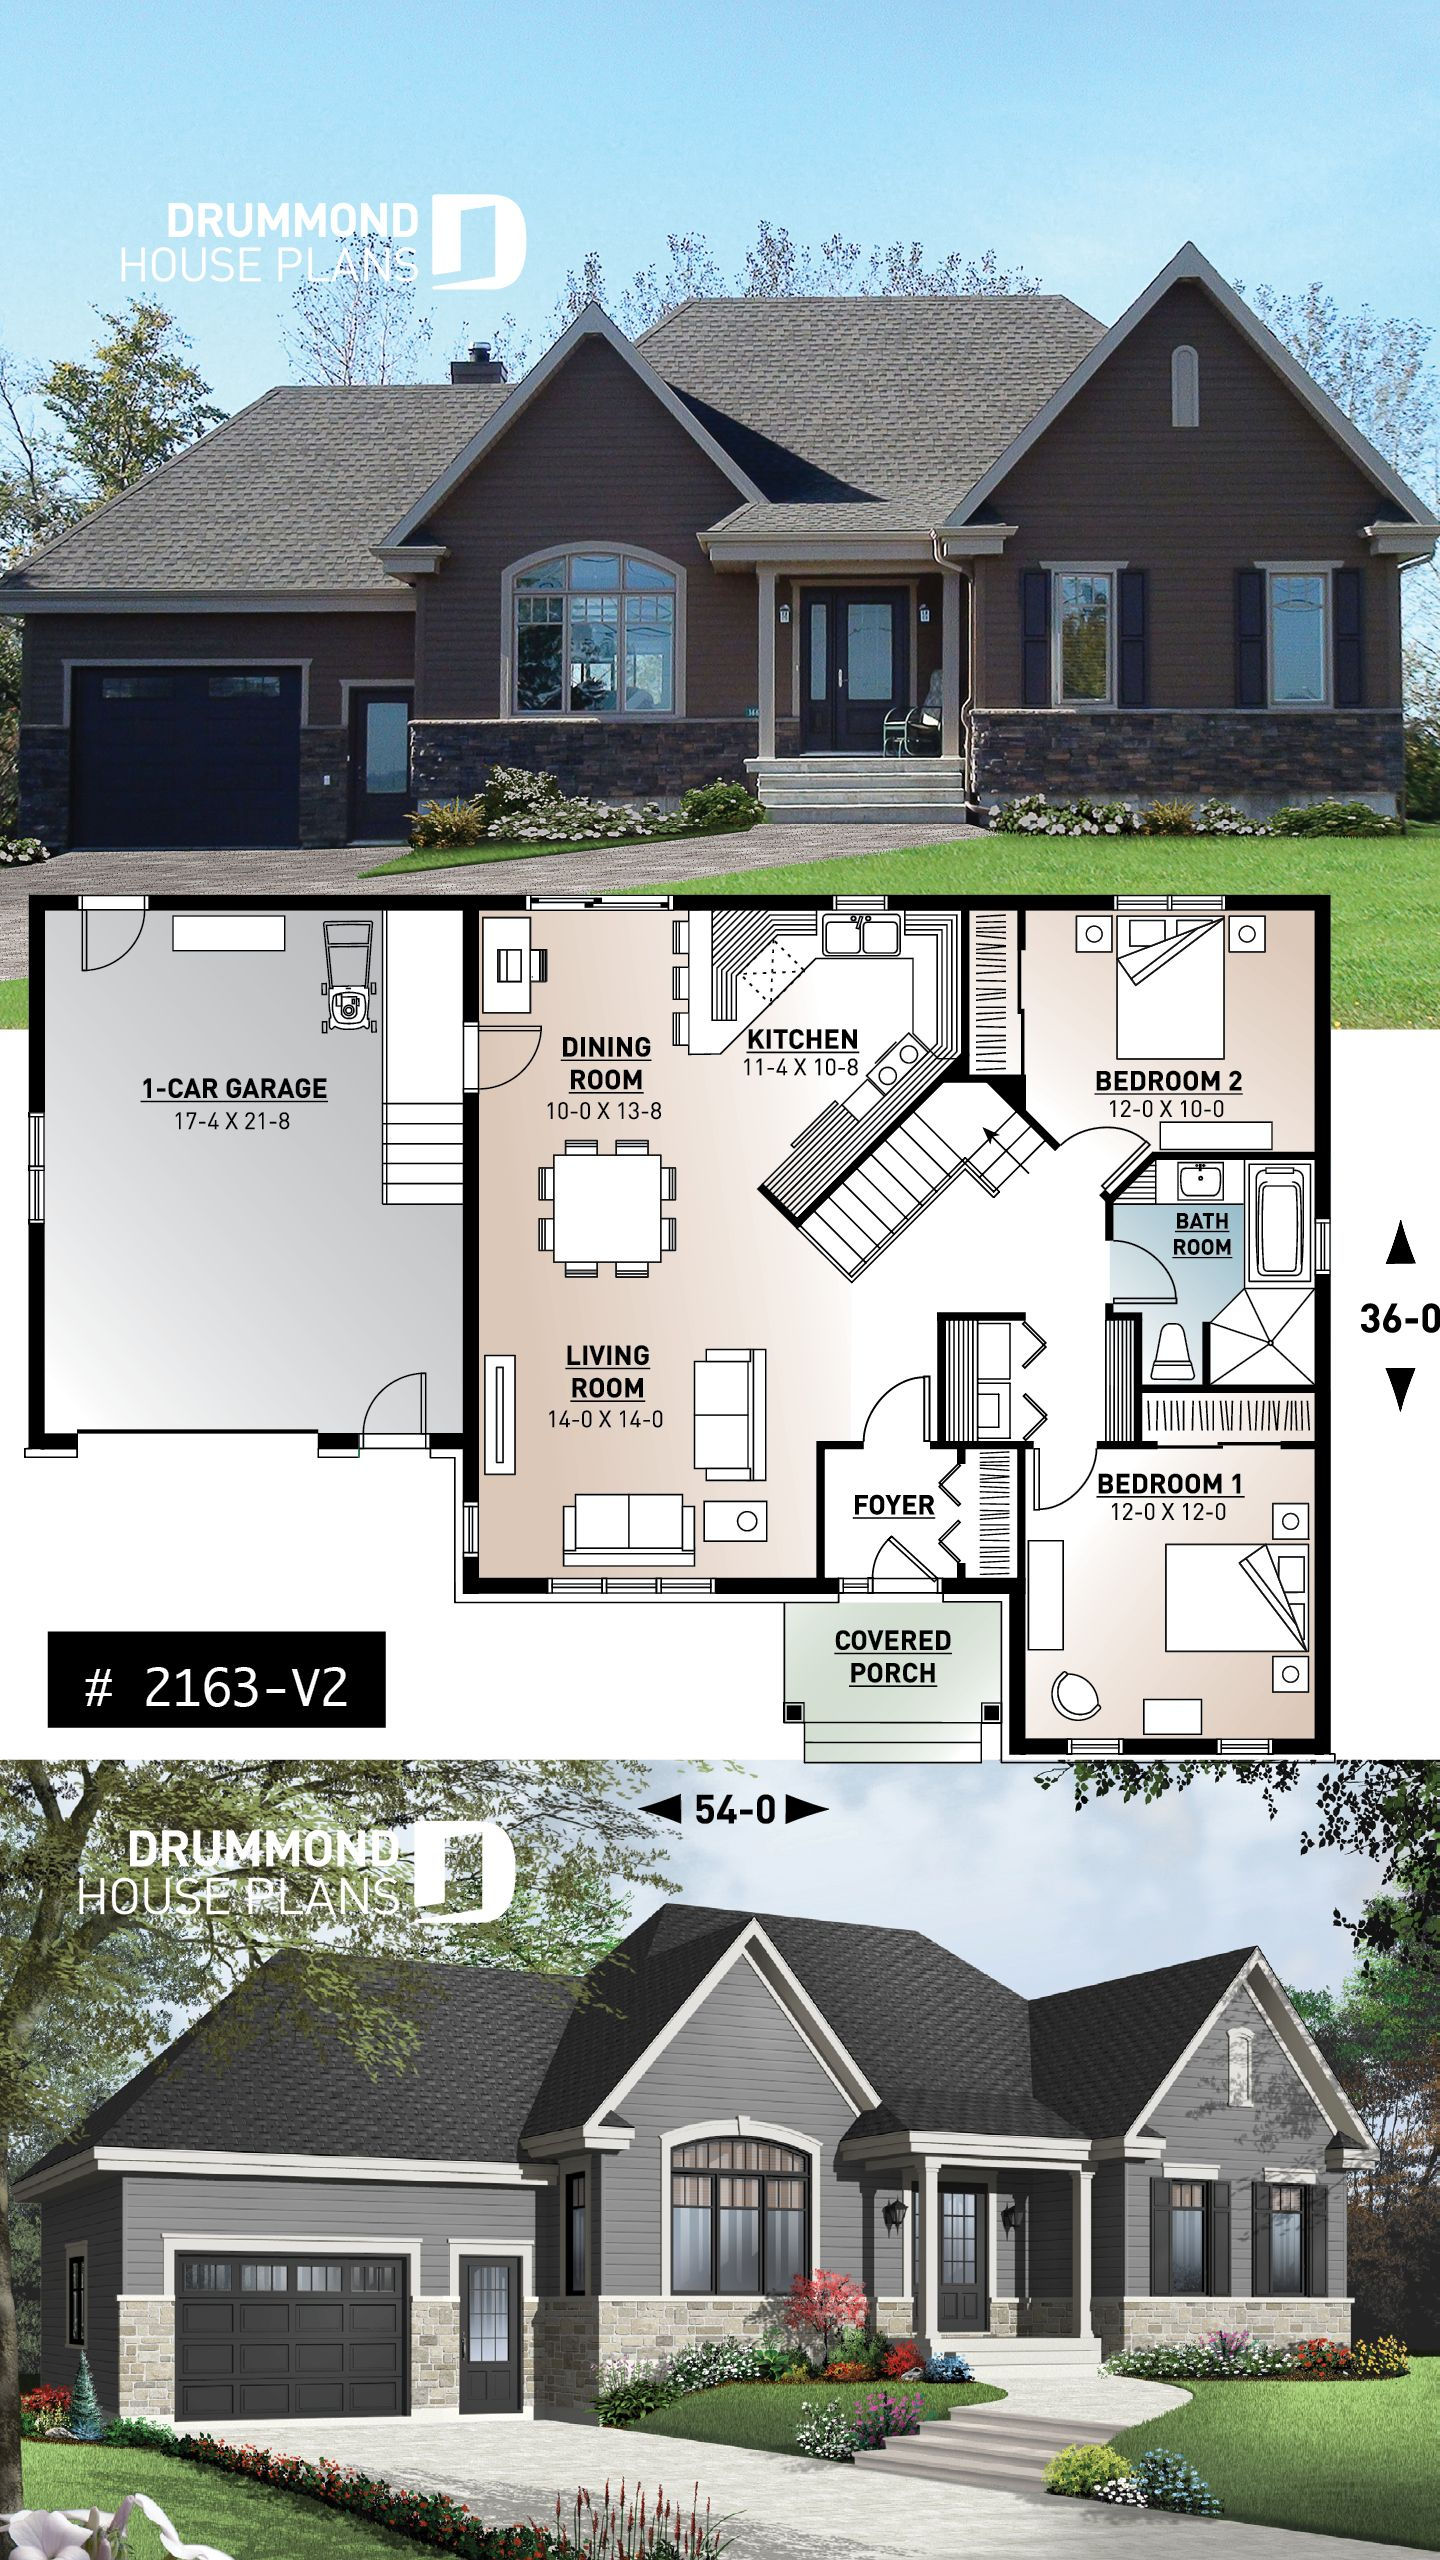 House Plan Springbrook 3 No 2163 V2 With Images Rustic House Plans Country Style House Plans Brick Ranch Houses